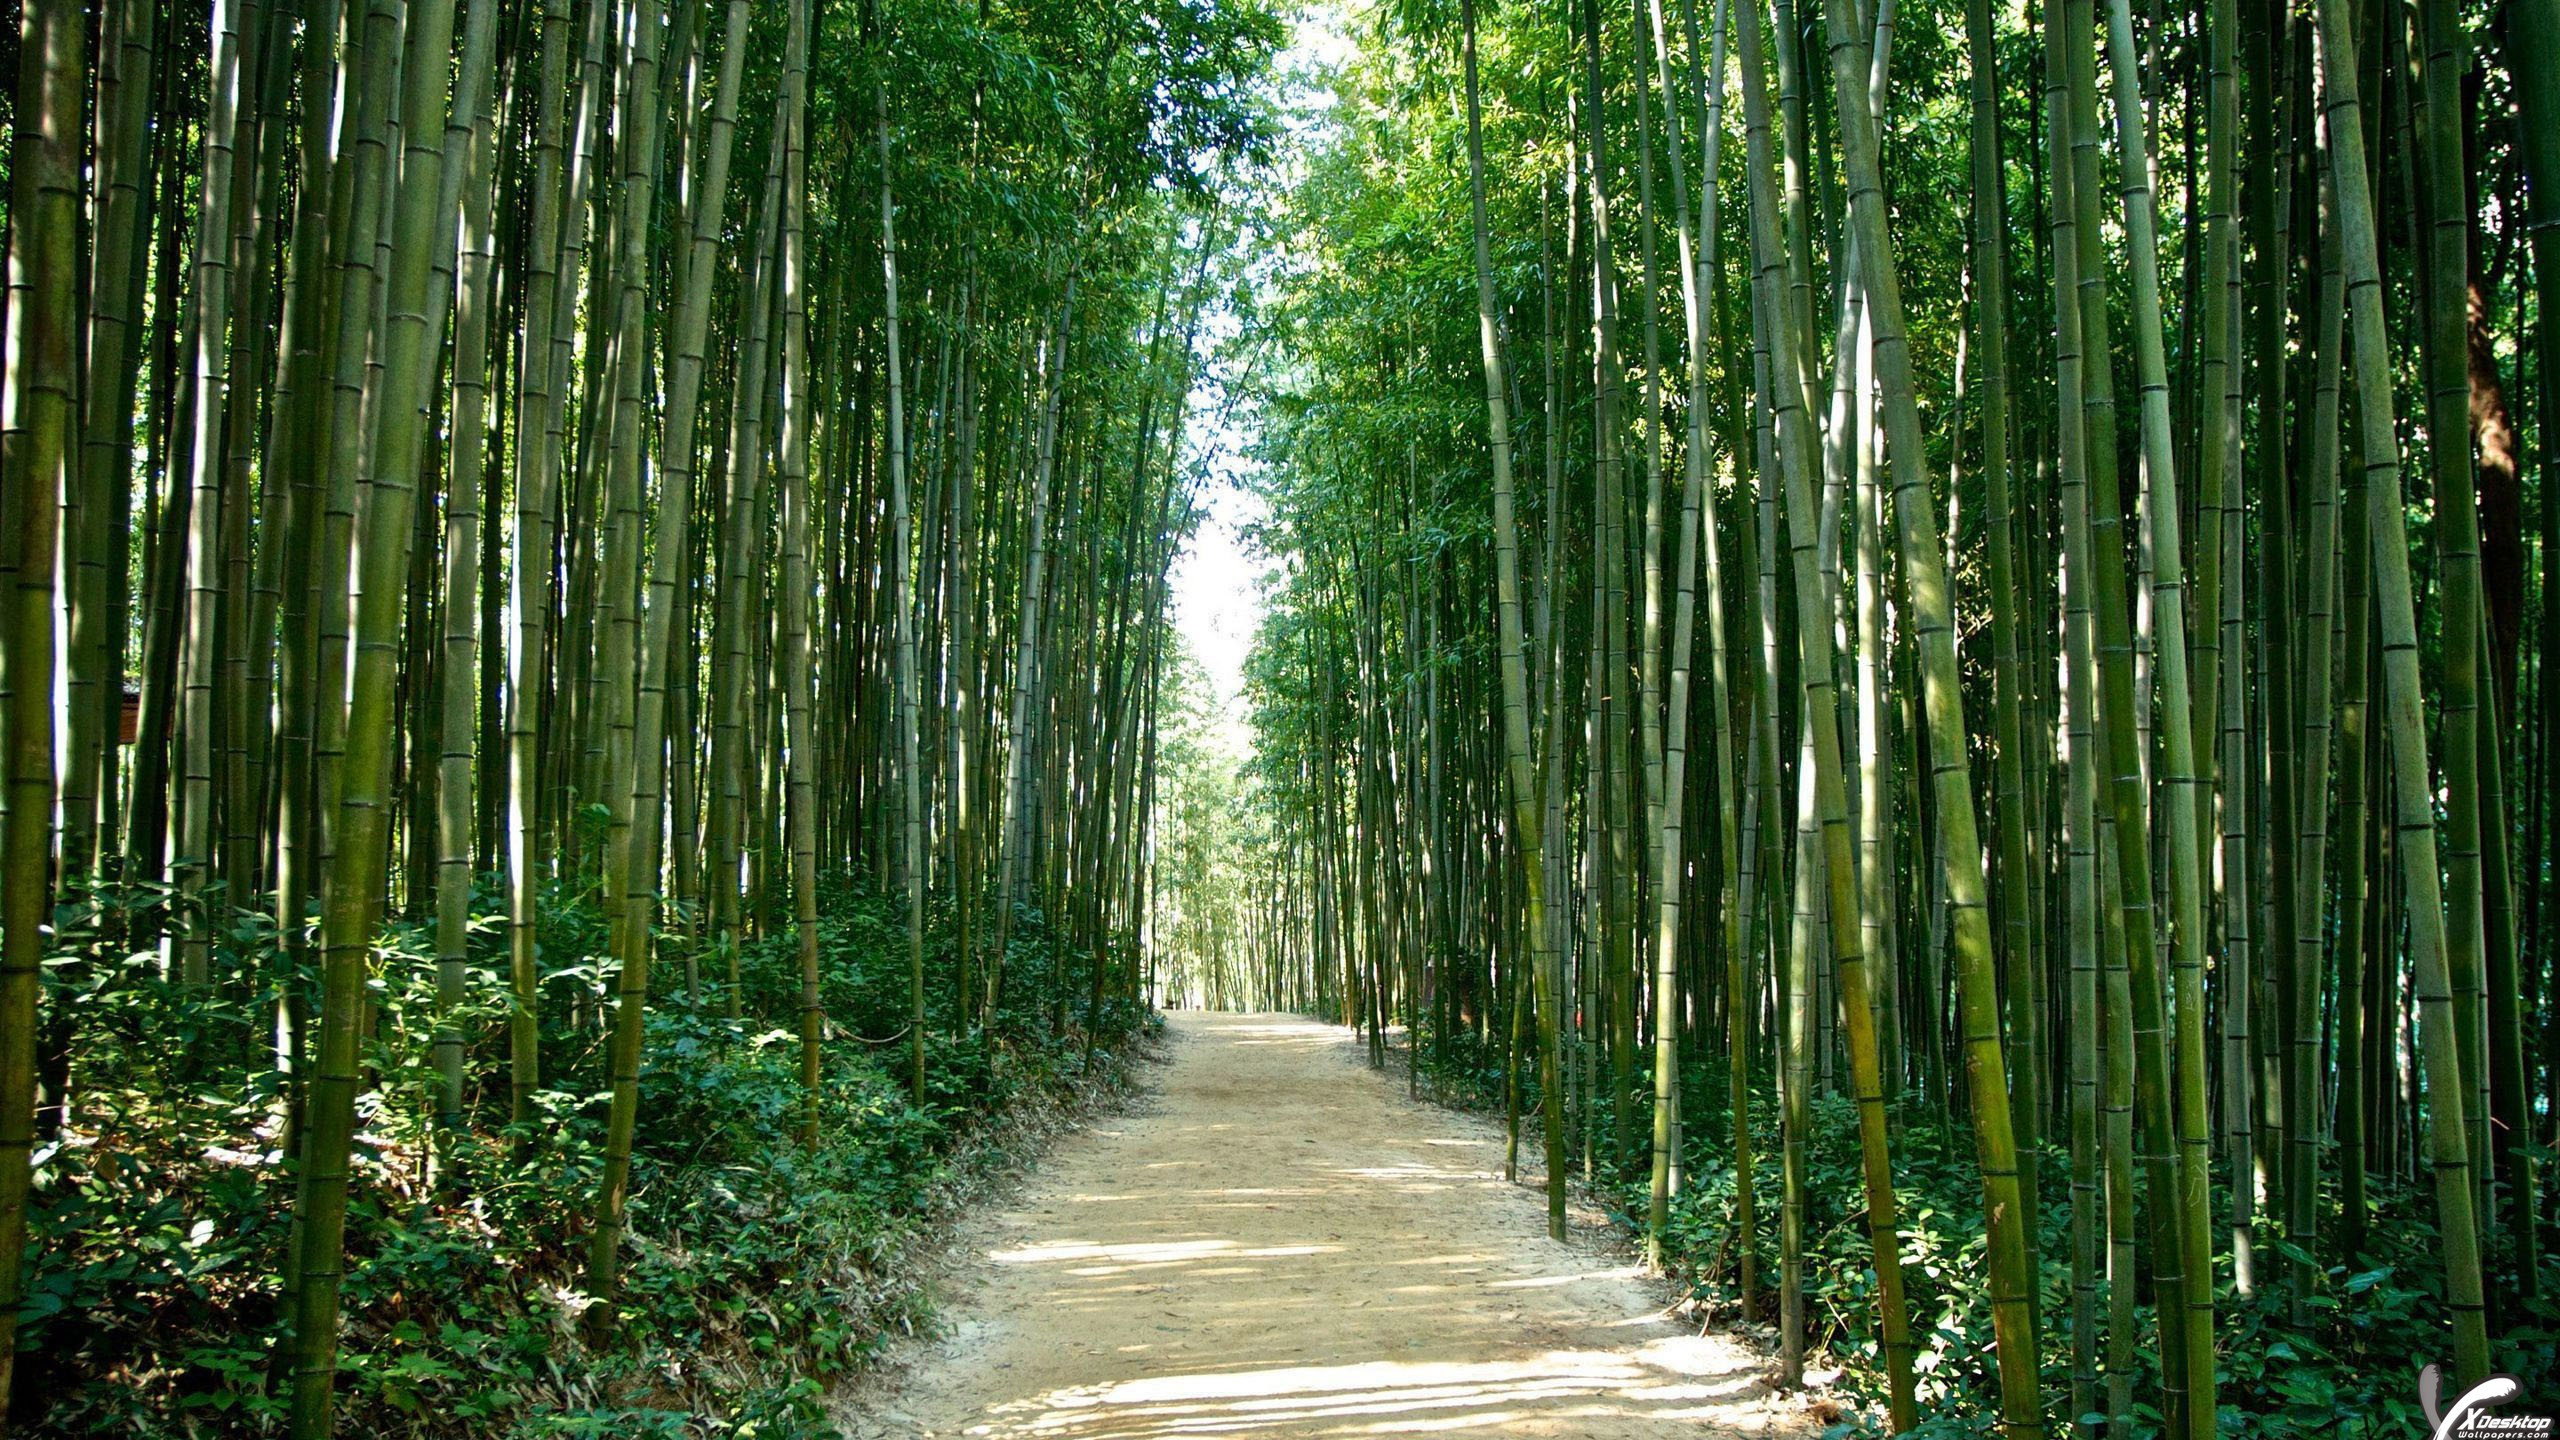 Vietnam has the large bamboo forest area